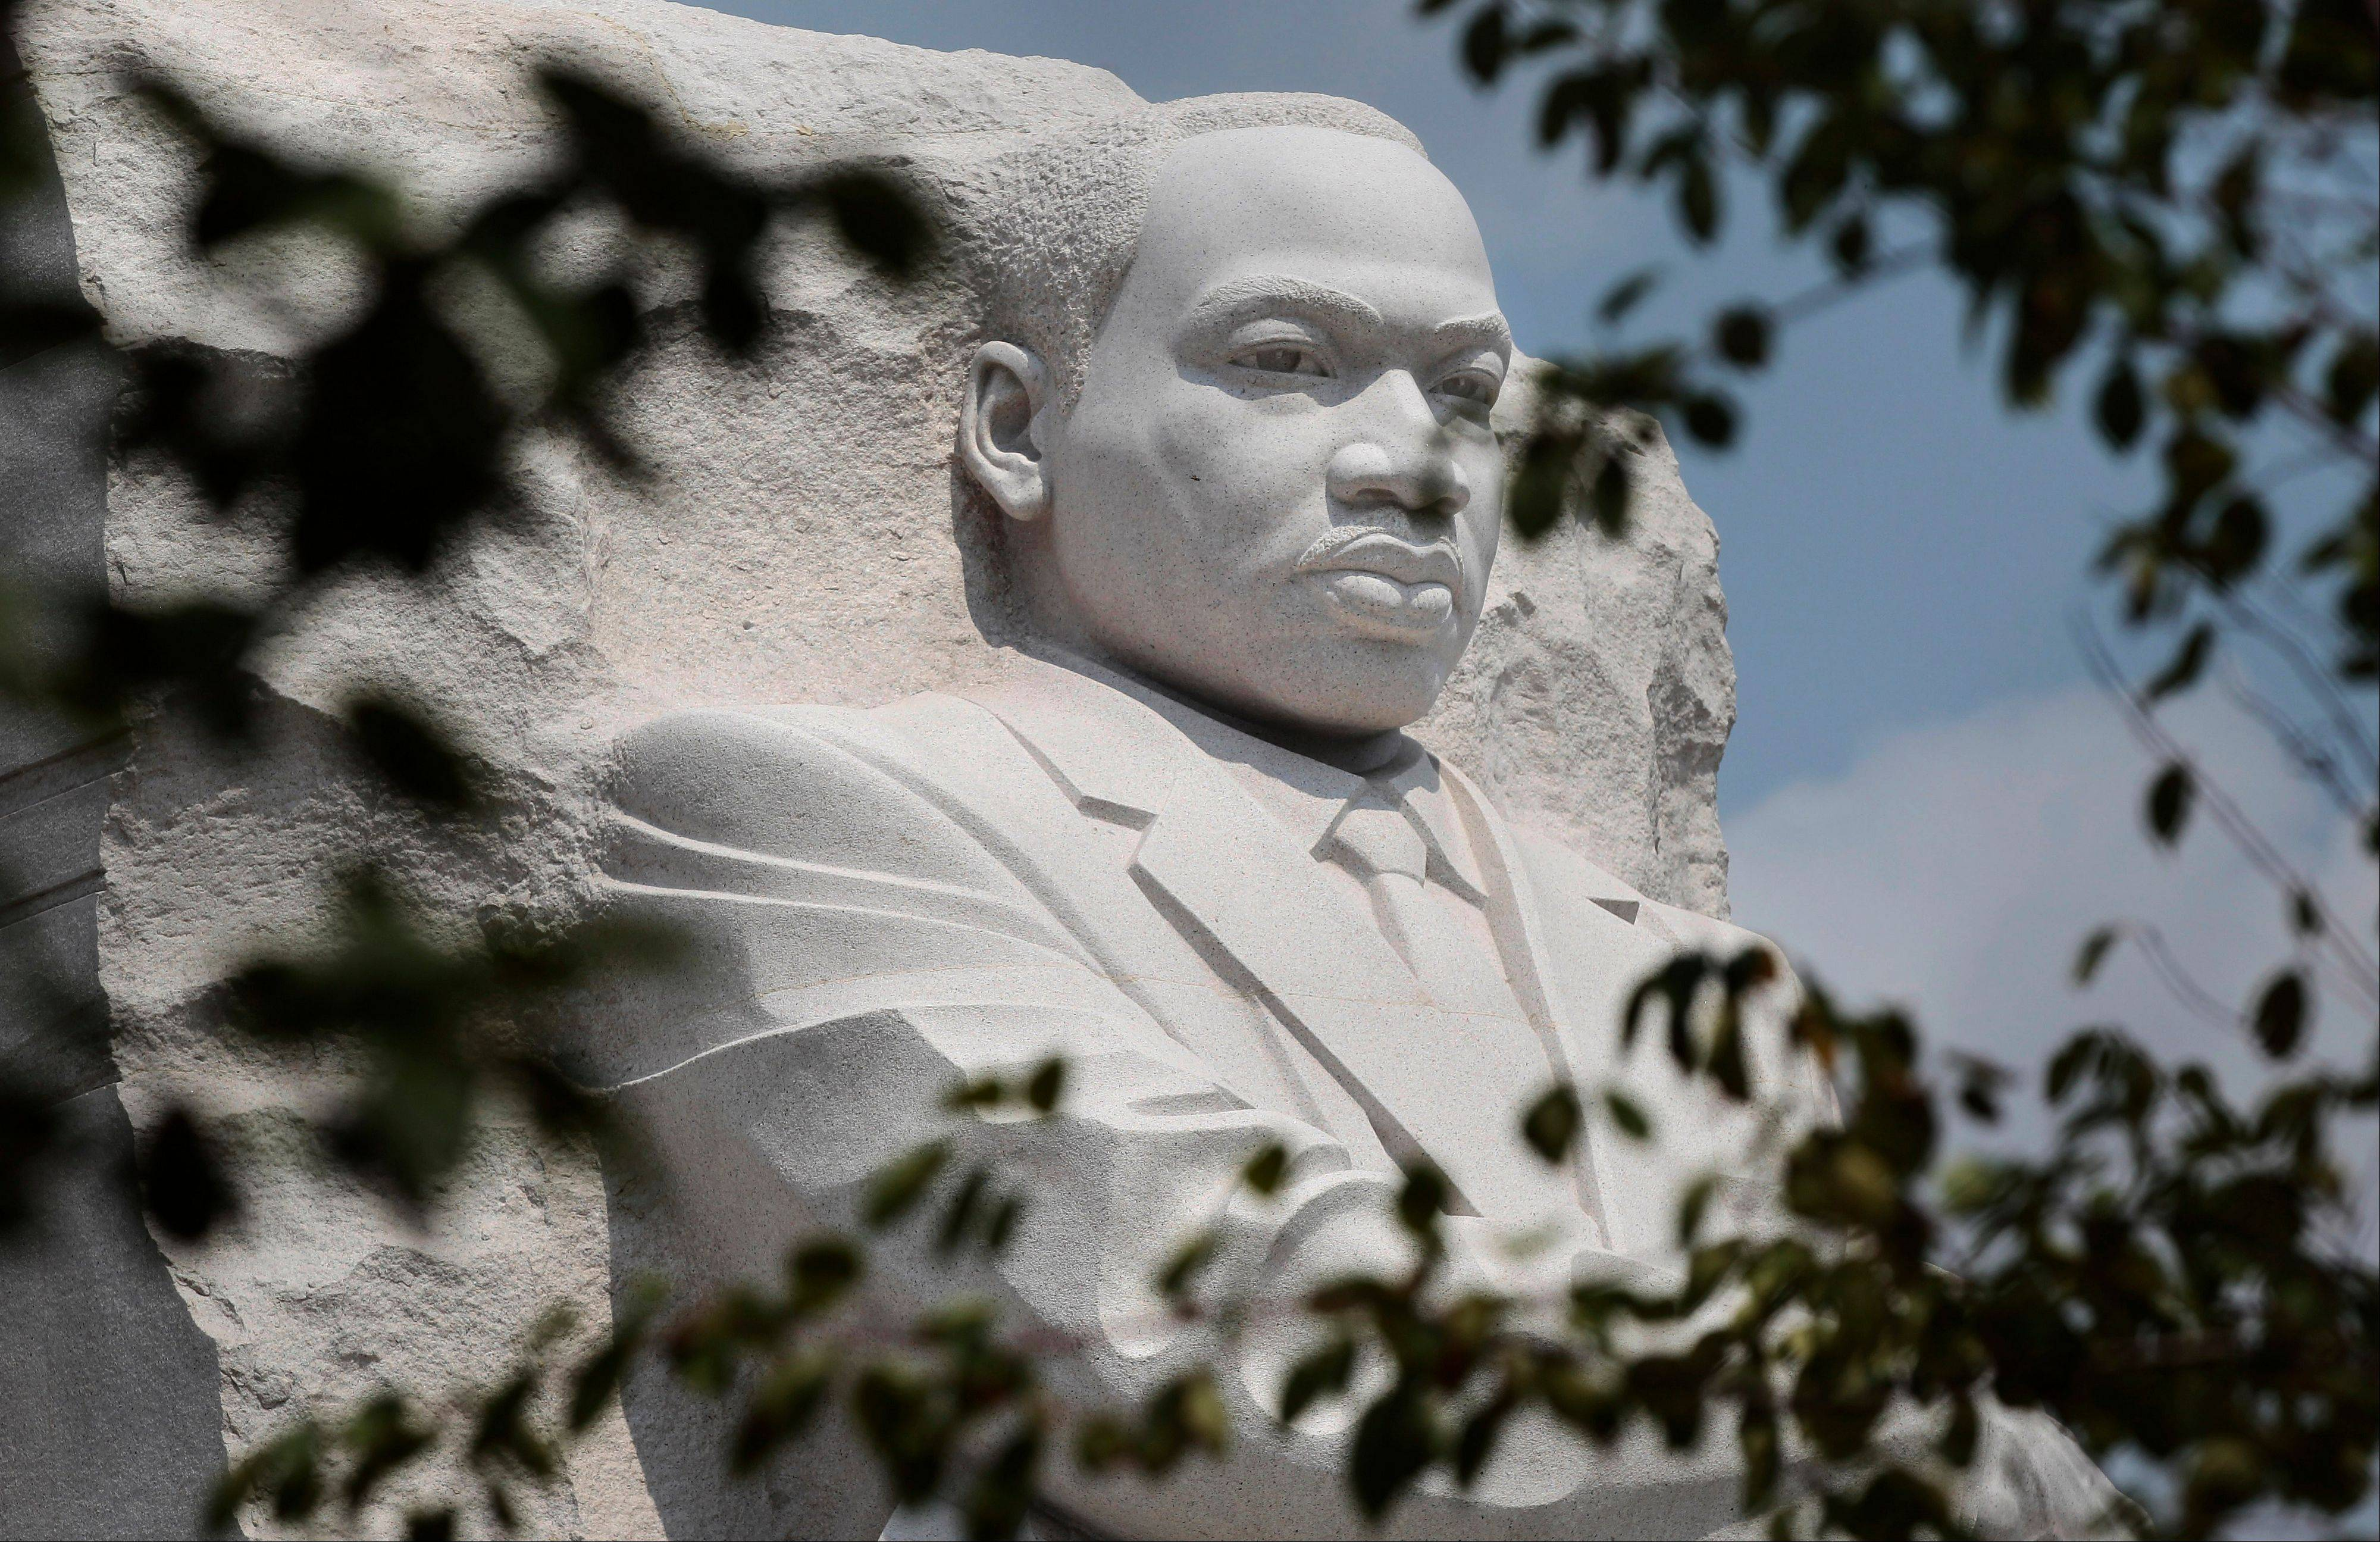 A detail of the memorial to the Rev. Martin Luther King Jr. is seen on the National Mall in Washington, Sunday, Aug., 21, 2011. The memorial for the late civil rights leader is scheduled to be dedicated later this week.